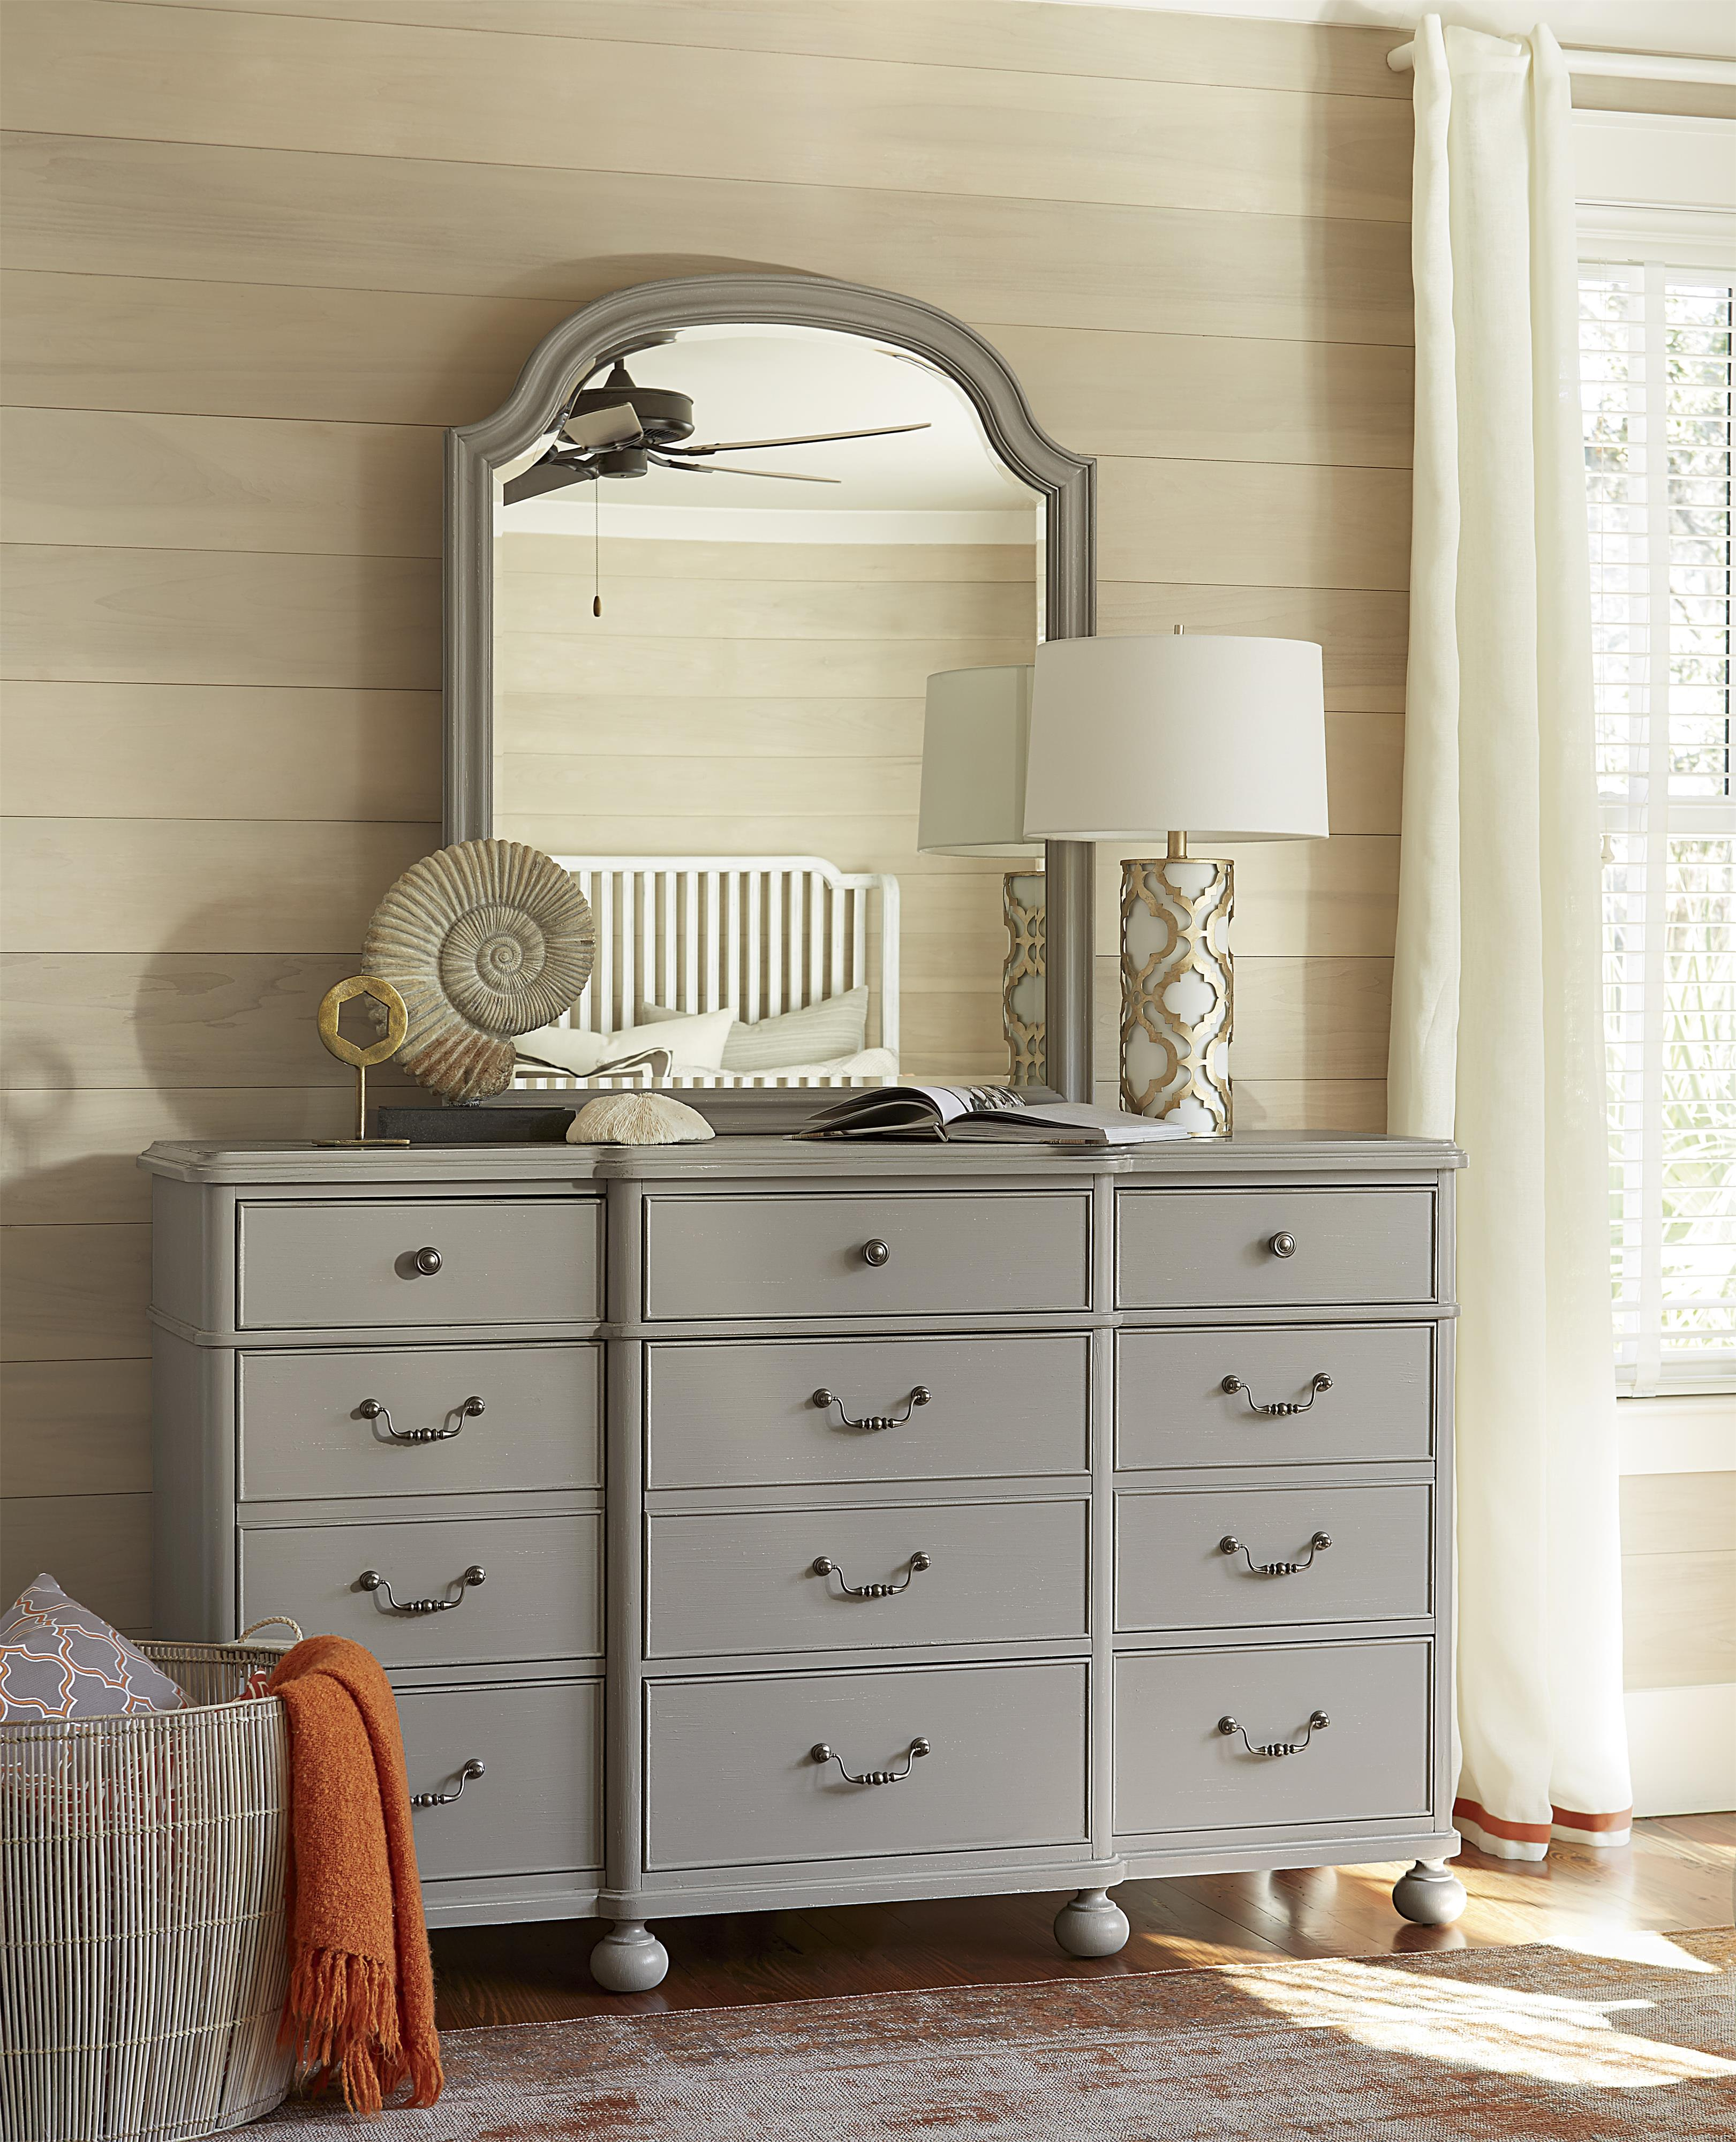 Paula Deen By Universal Dogwood Mirror With Arched Top Reeds Furniture Dresser Mirrors